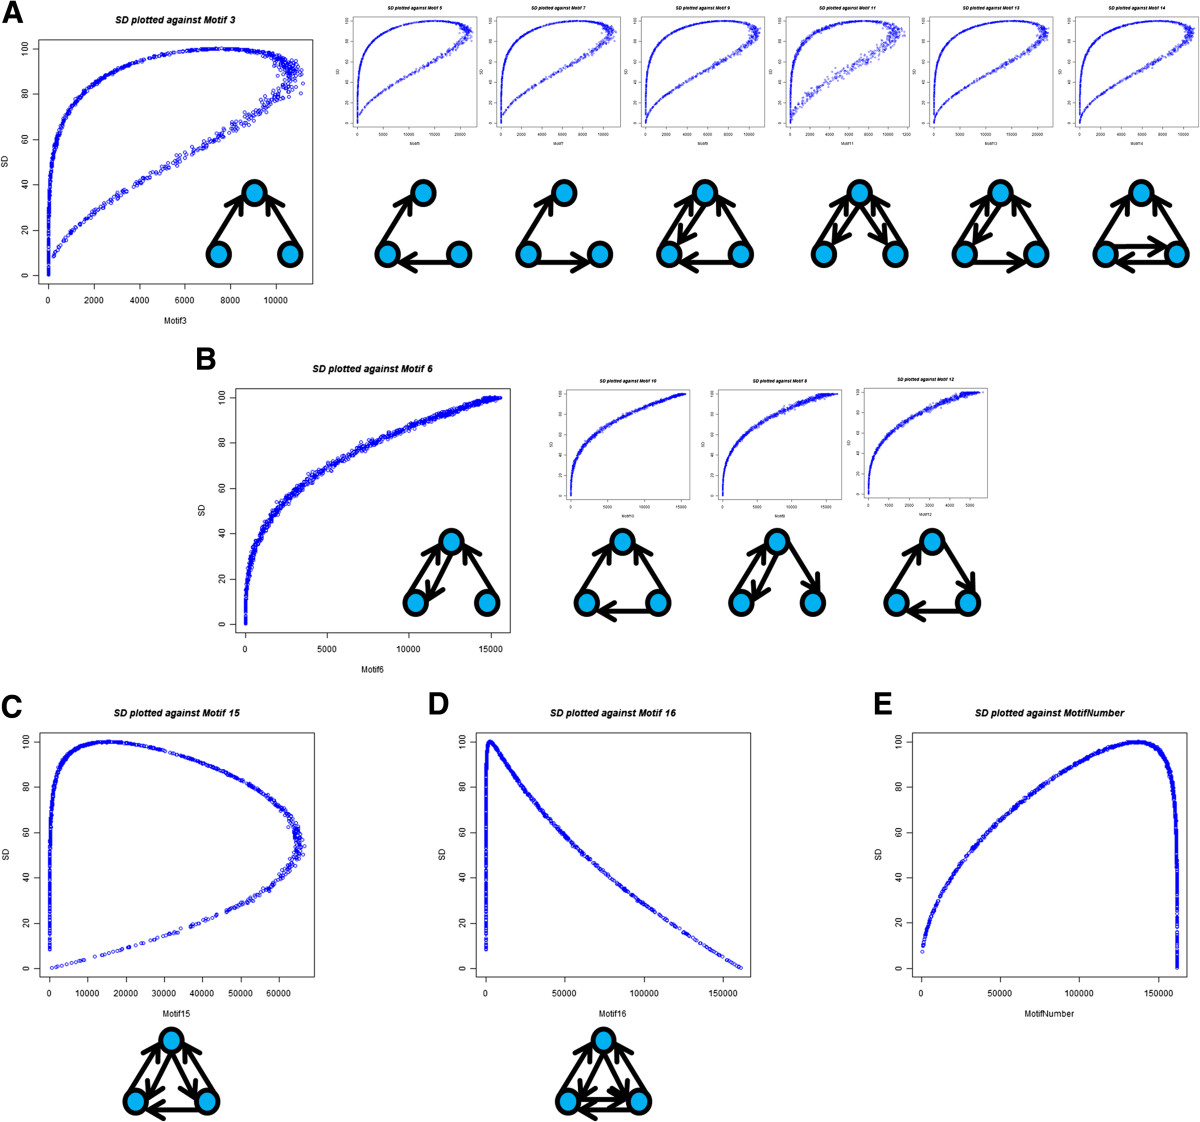 http://static-content.springer.com/image/art%3A10.1186%2F2042-1001-2-7/MediaObjects/13232_2011_Article_24_Fig4_HTML.jpg